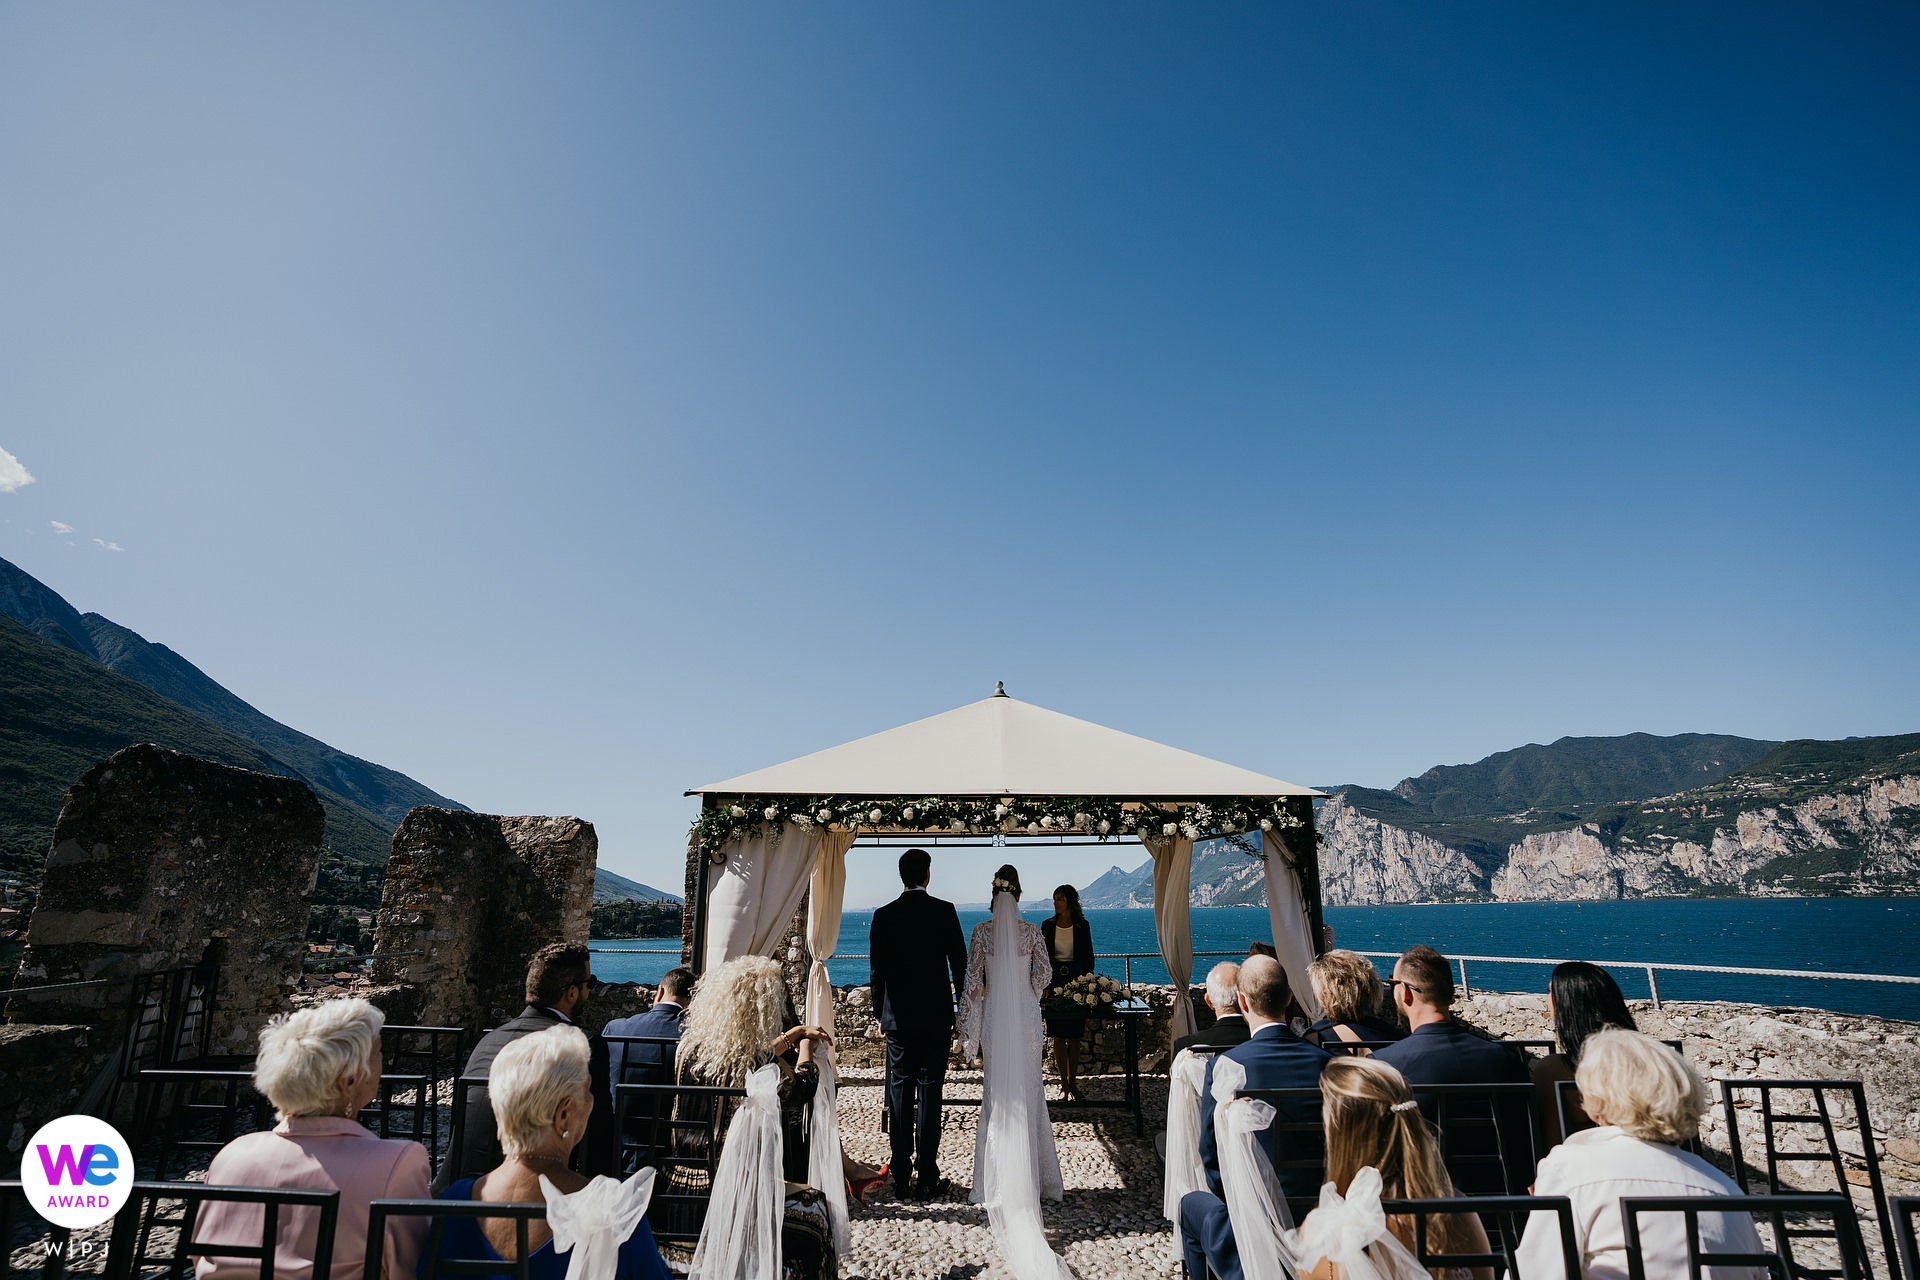 Malcesine Castle, Italy Elopement Photography | The wonderful view of the wedding ceremony, a few guests, and the lake